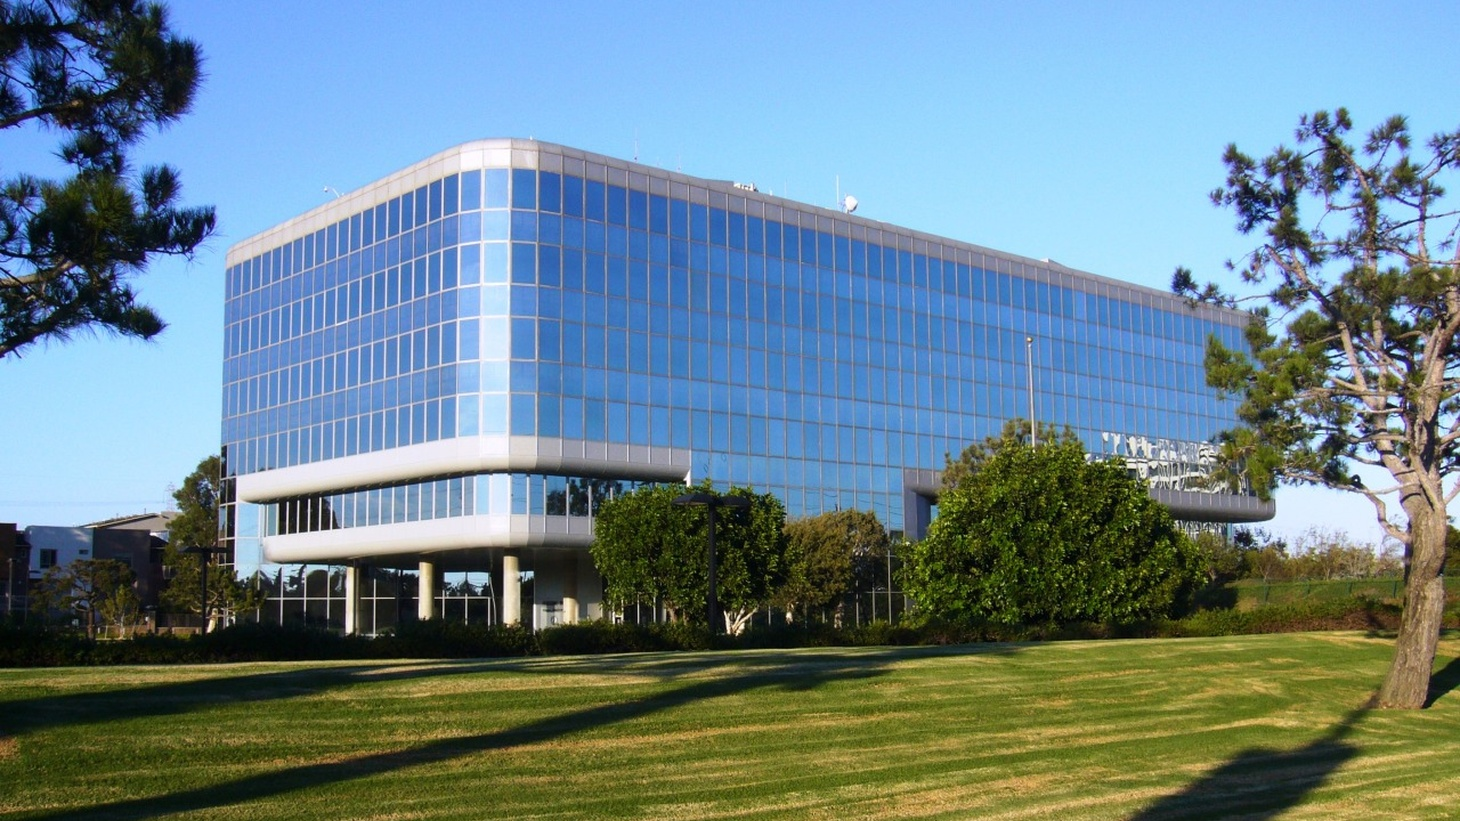 Designed by Cesar Pelli and Anthony Lumsden of DMJM, the 1972 Federal Aviation Administration Building (FAA) in Hawthorne was the first Southern California building to have a mirrored skin.